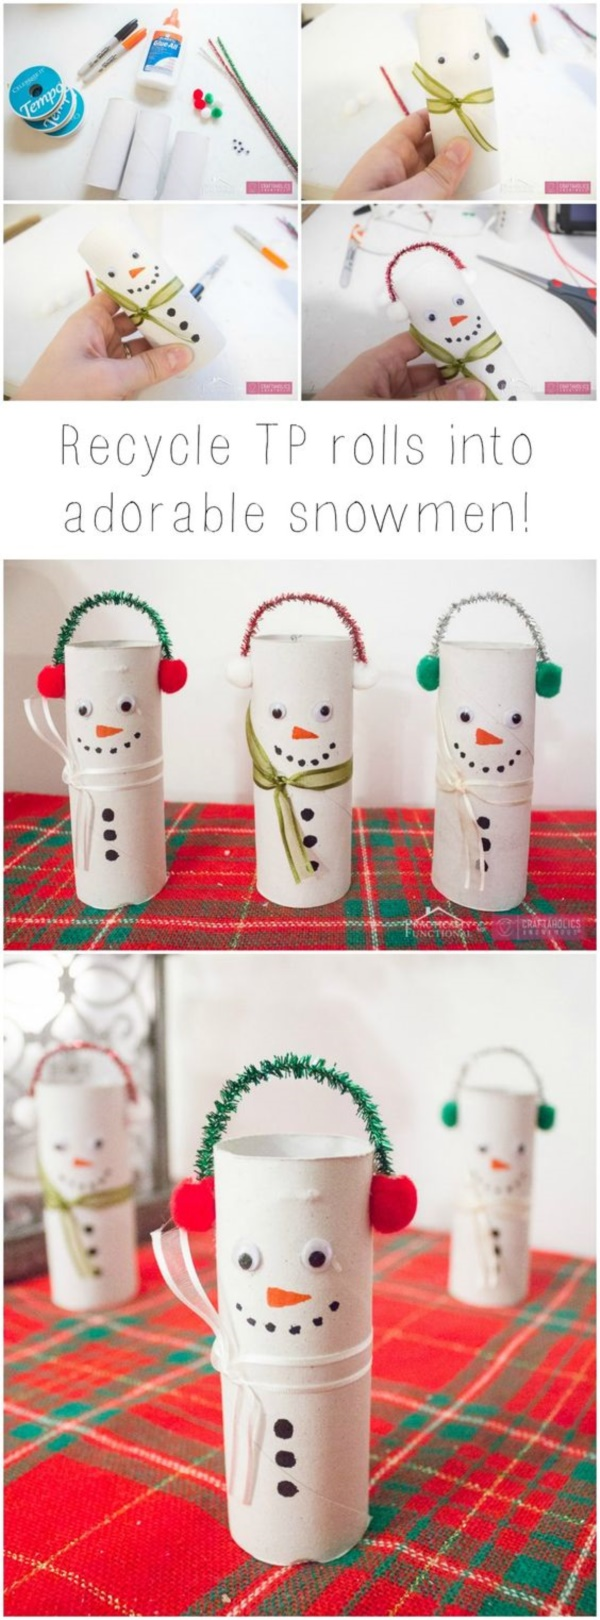 toilet-paper-roll-crafts-ideas-for-instant-karma0391